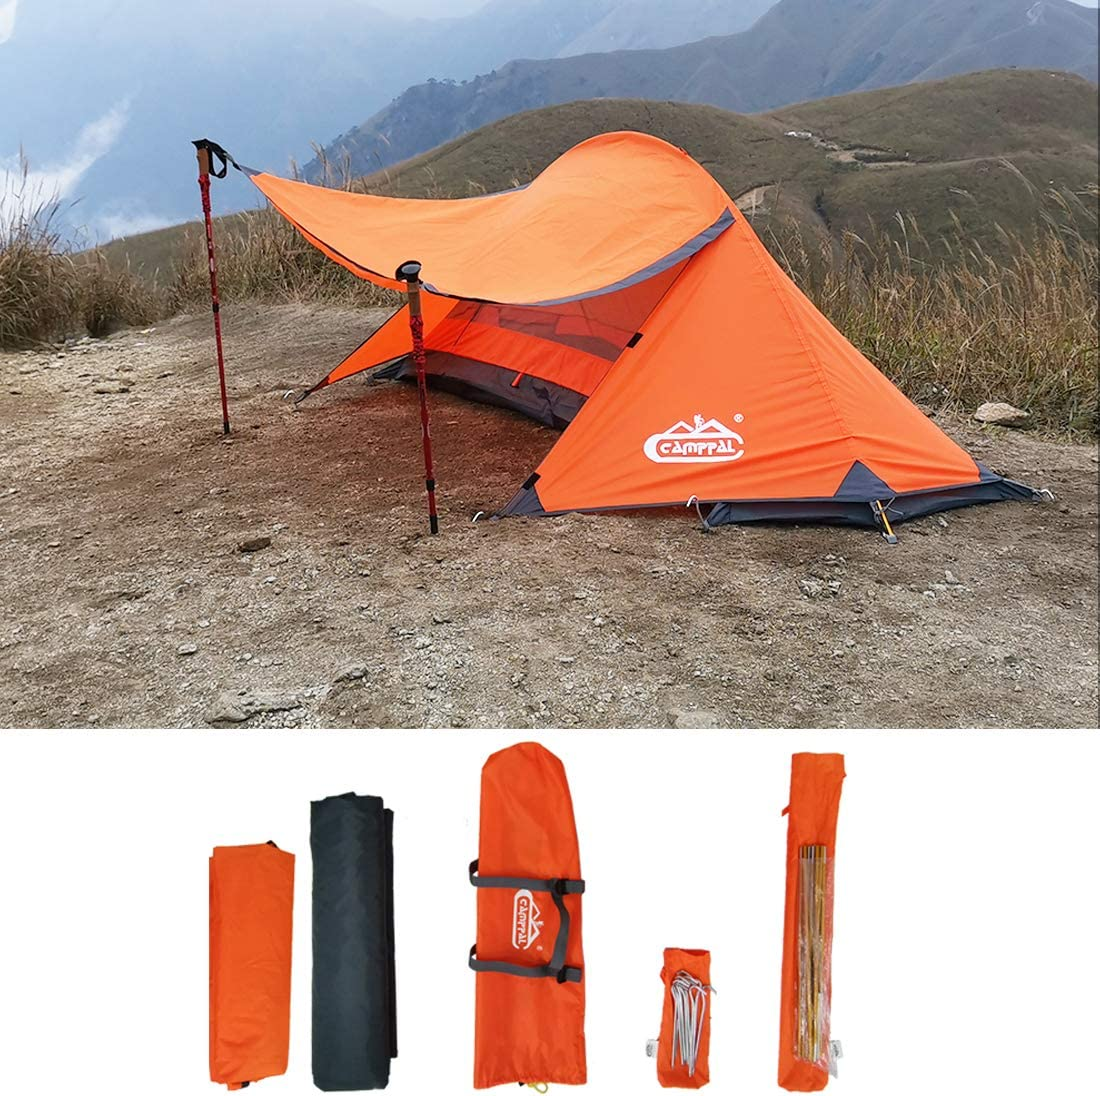 camppal Professional 1 Person Extreme Space Saving Single Bracket Tent, 4 Season Mountain Tent, Lightweight Backpacking Tents, Waterproof Hiking Hunting Camping Tent (MT051)